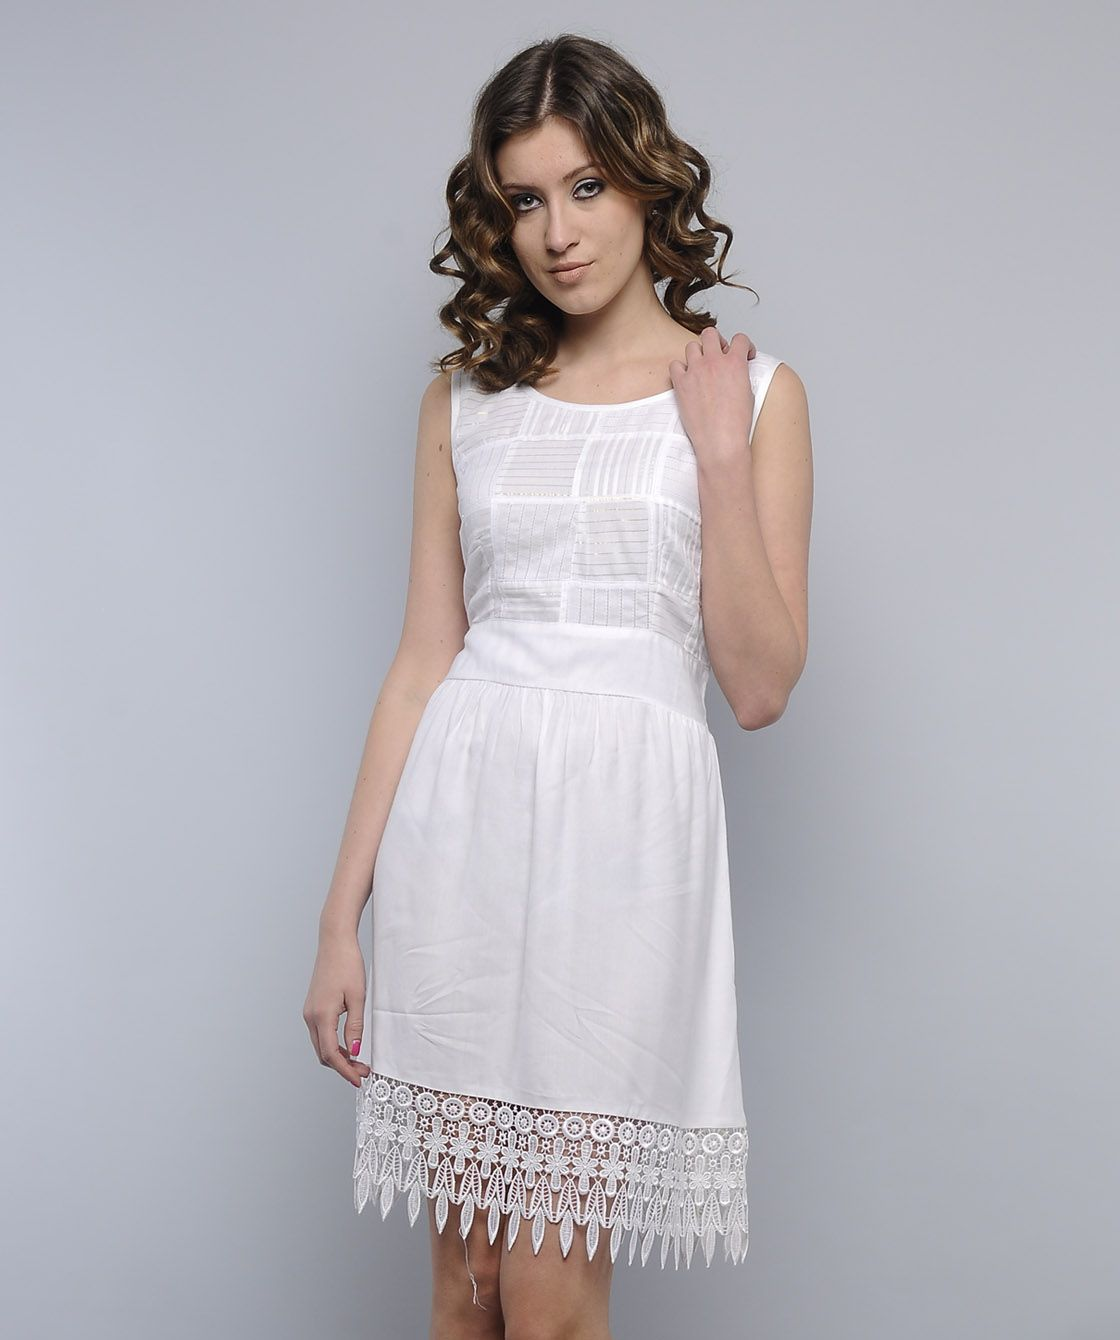 Awesome Summer Dress... :)